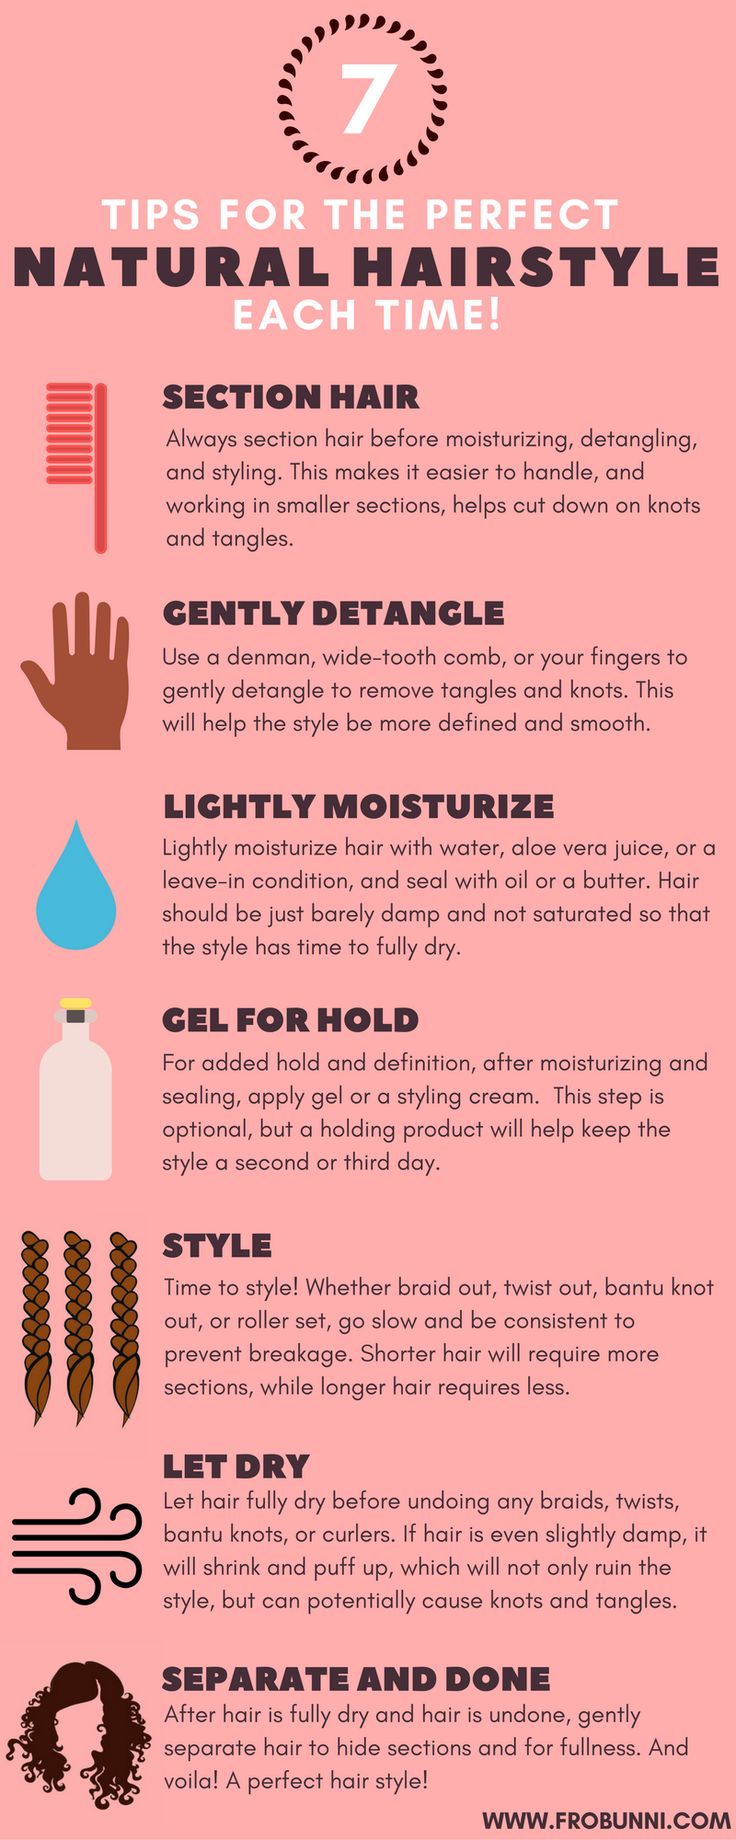 These tips will work for every style; braid outs, twist outs, bantu knots, roller sets, you name it! So go forth and always have a great hair day!